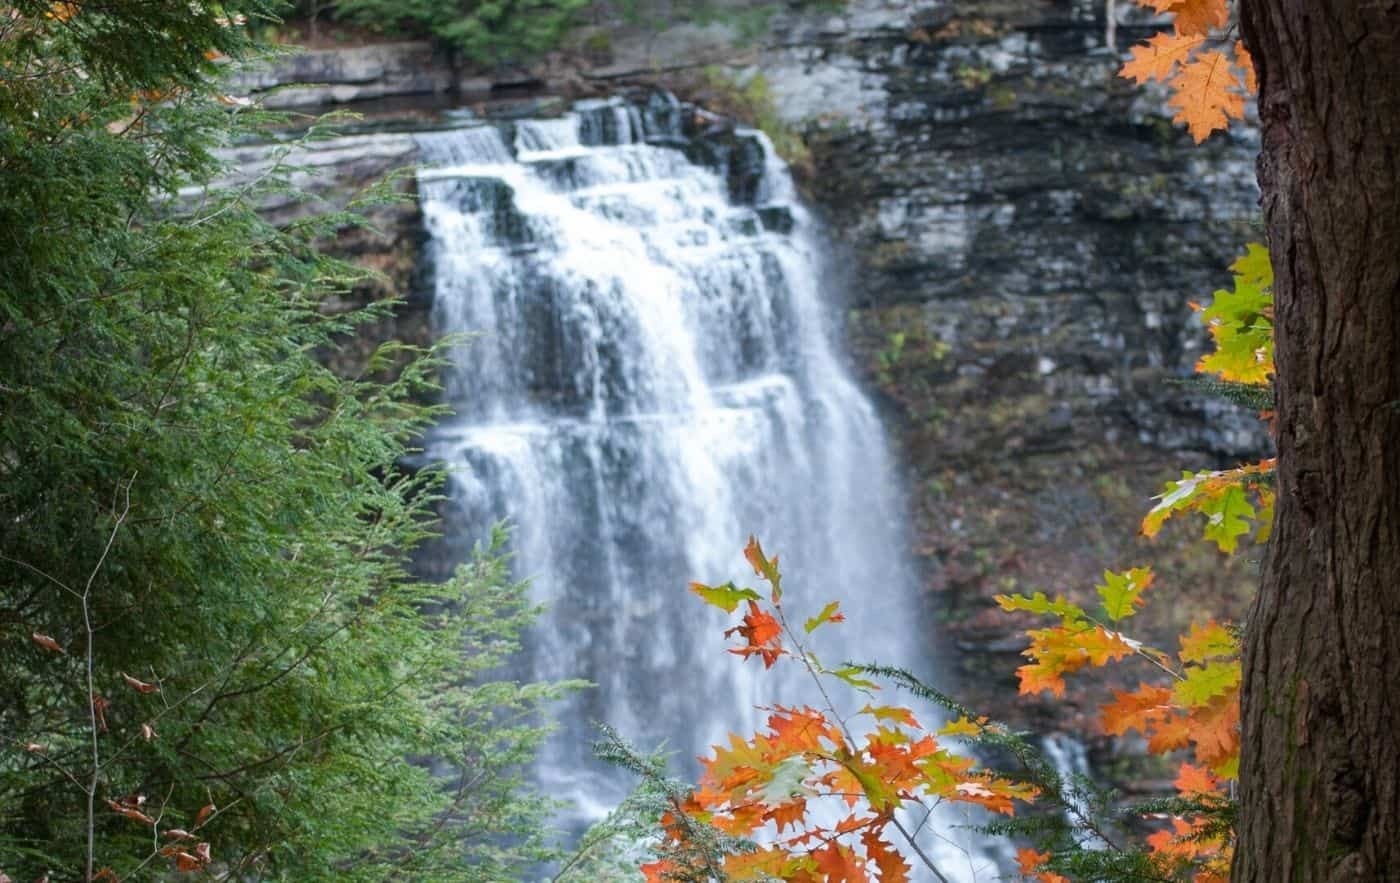 Salmon River Falls. Another one of the best waterfalls in New York.